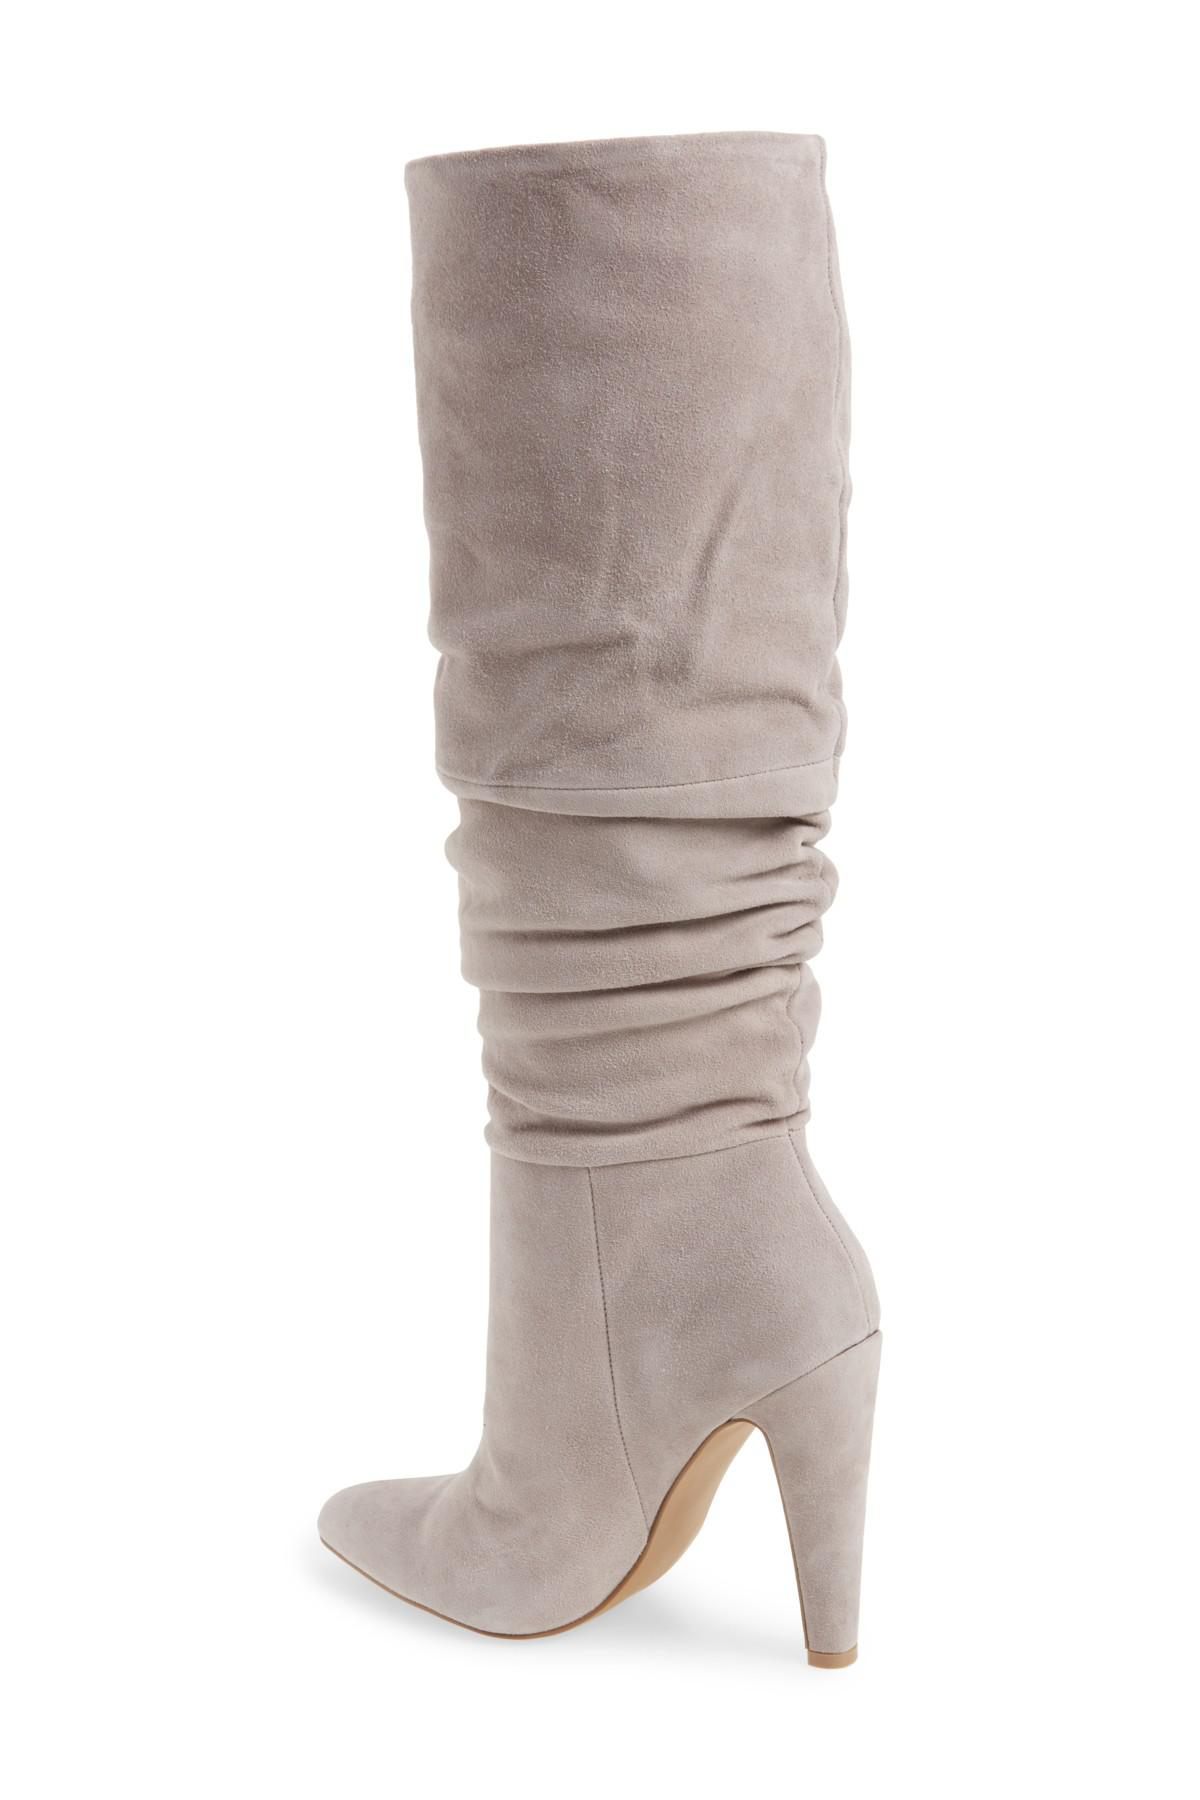 4c73bf5851f Lyst - Steve Madden Carrie Slouchy Boot in Gray